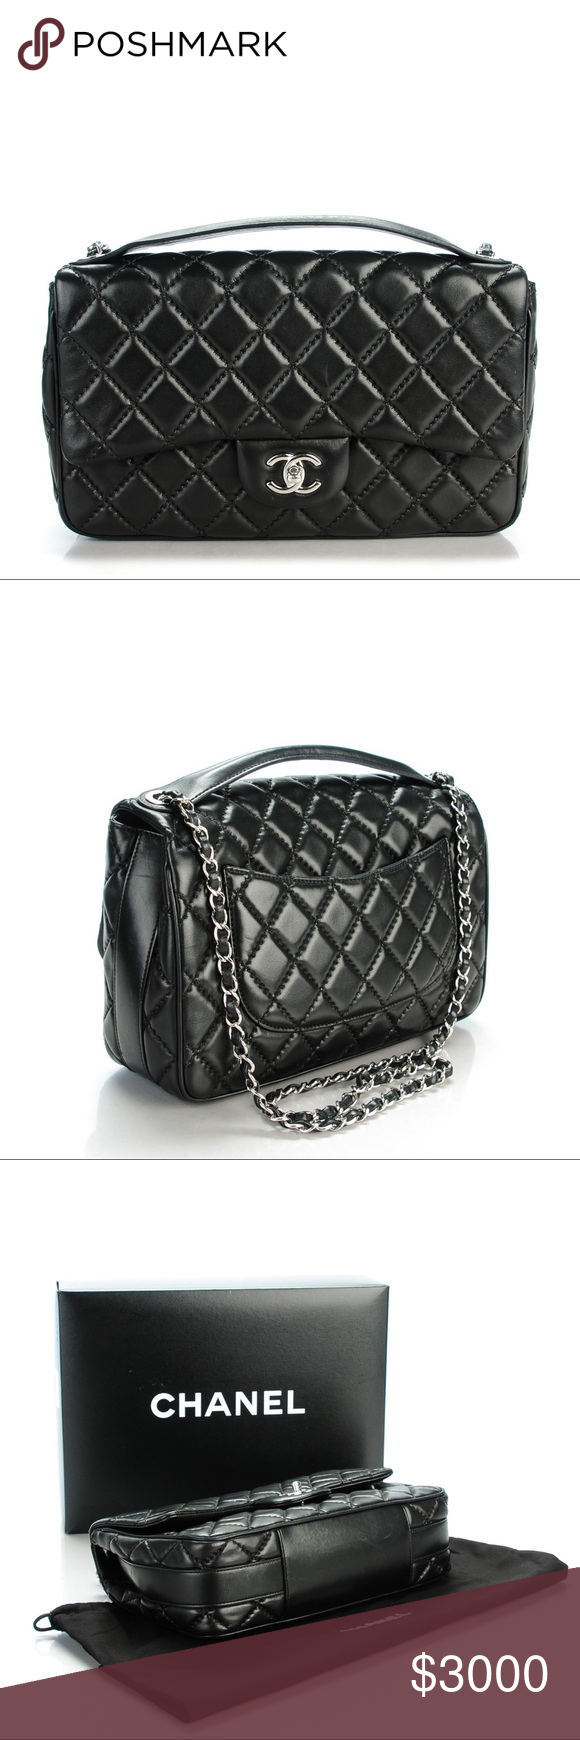 9f355bb843fb Chanel Lambskin Quilted Jumbo Easy Carry Flap Bag Authentic minor wear from  2015 Collection CHANEL Bags Shoulder Bags